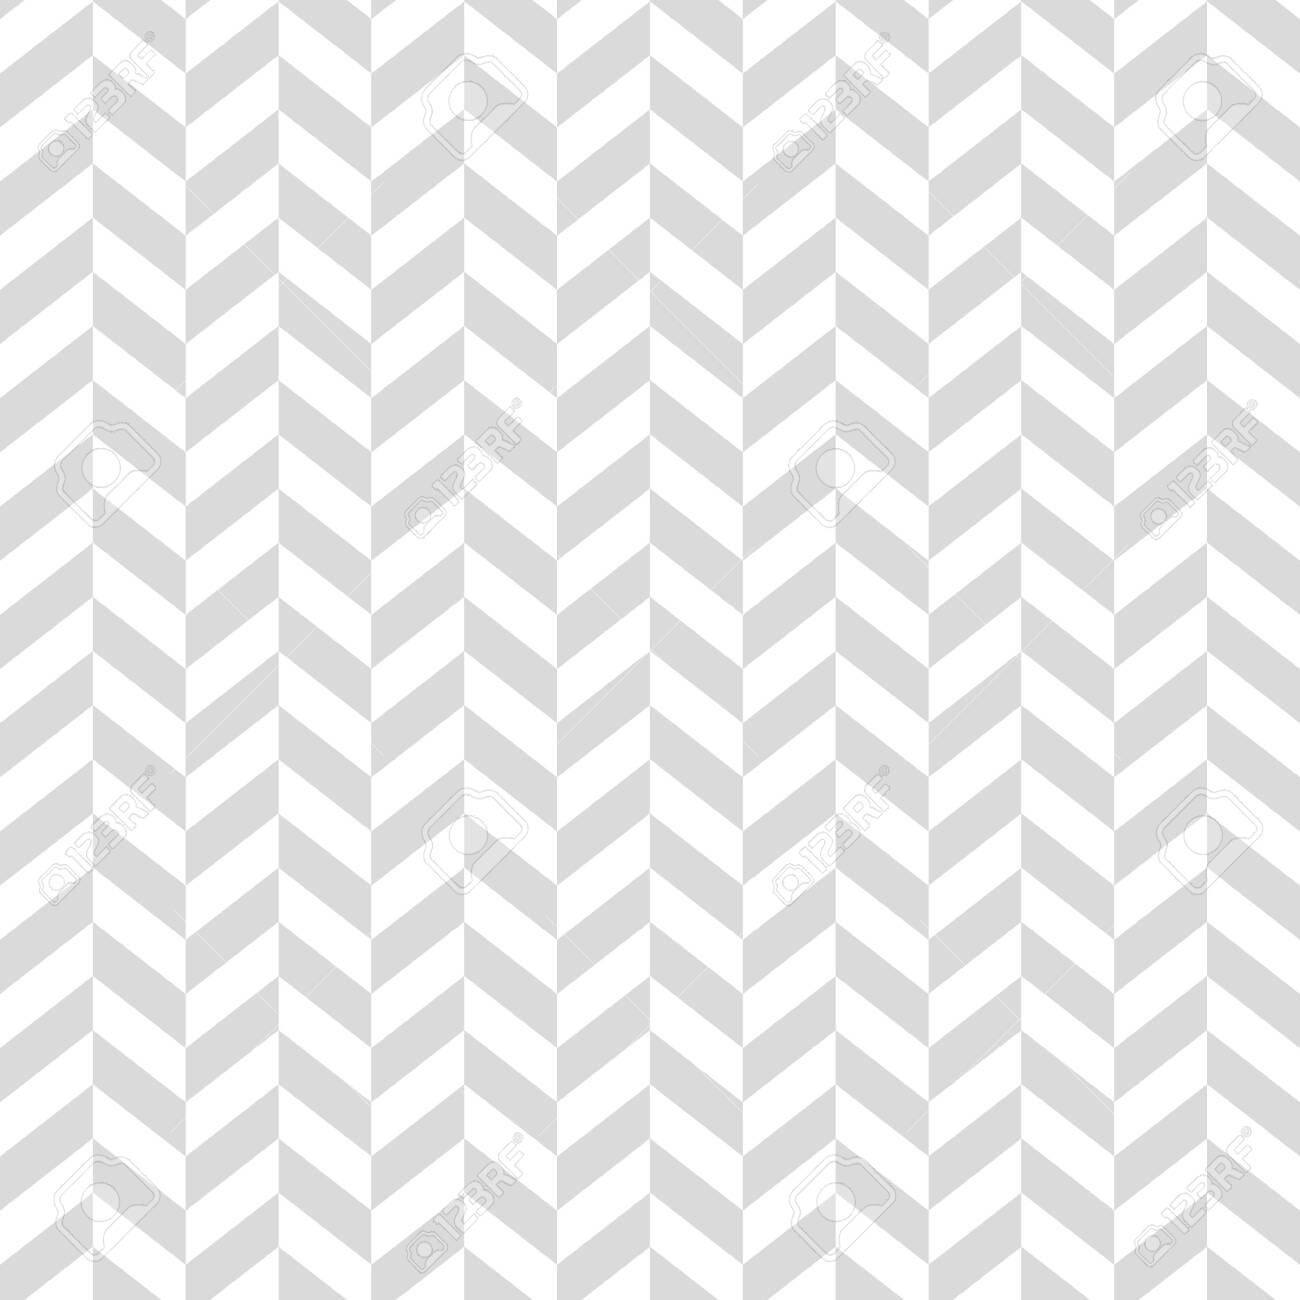 Retro Pattern with Diagonal Squares. Vector simple seamless background - 134194861